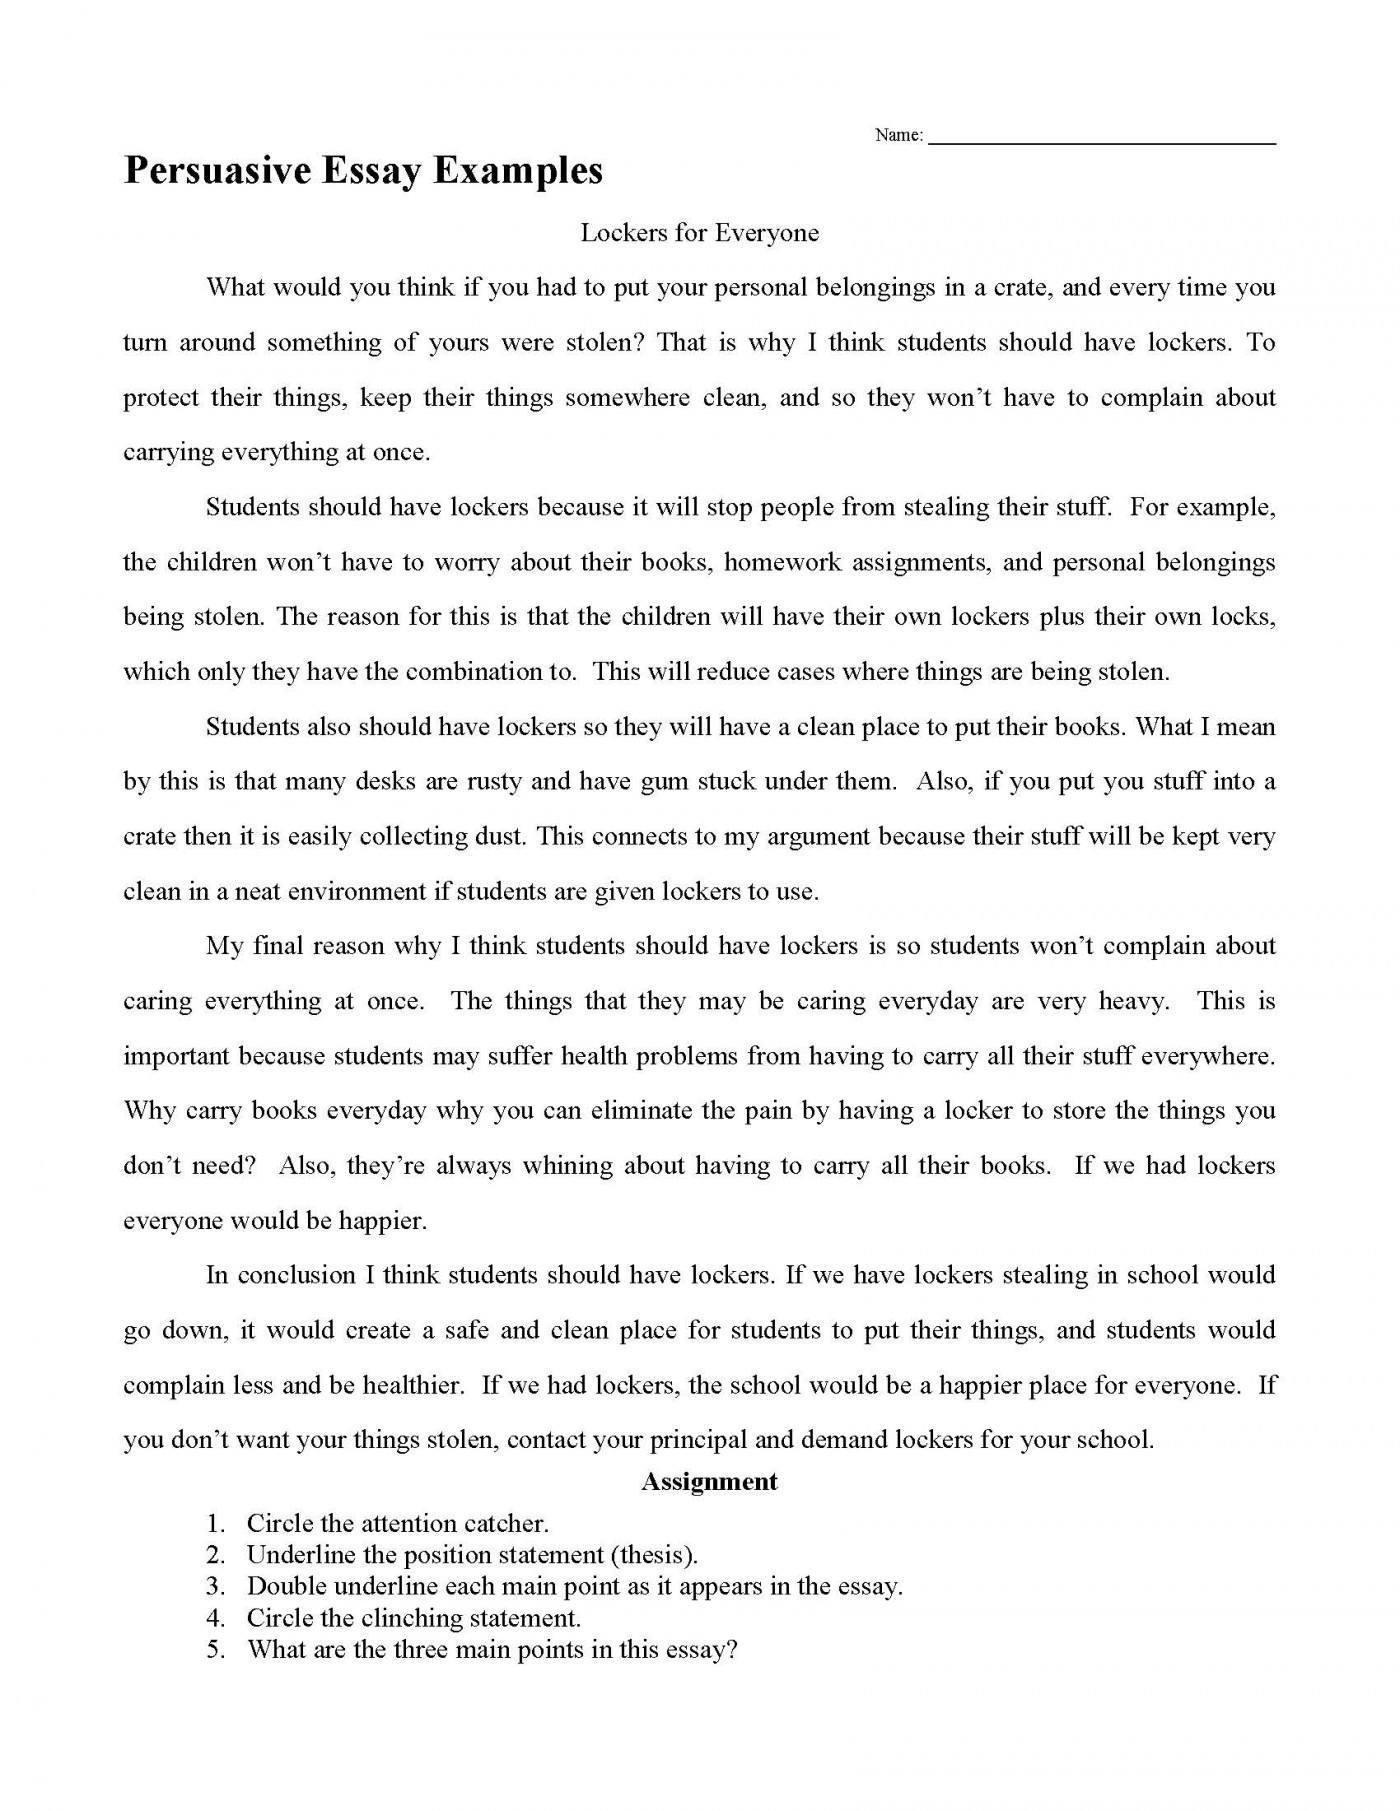 001 Persuasive Essays Impressive Essay Examples For Middle School Good Topics 4th Grade 5th 1400